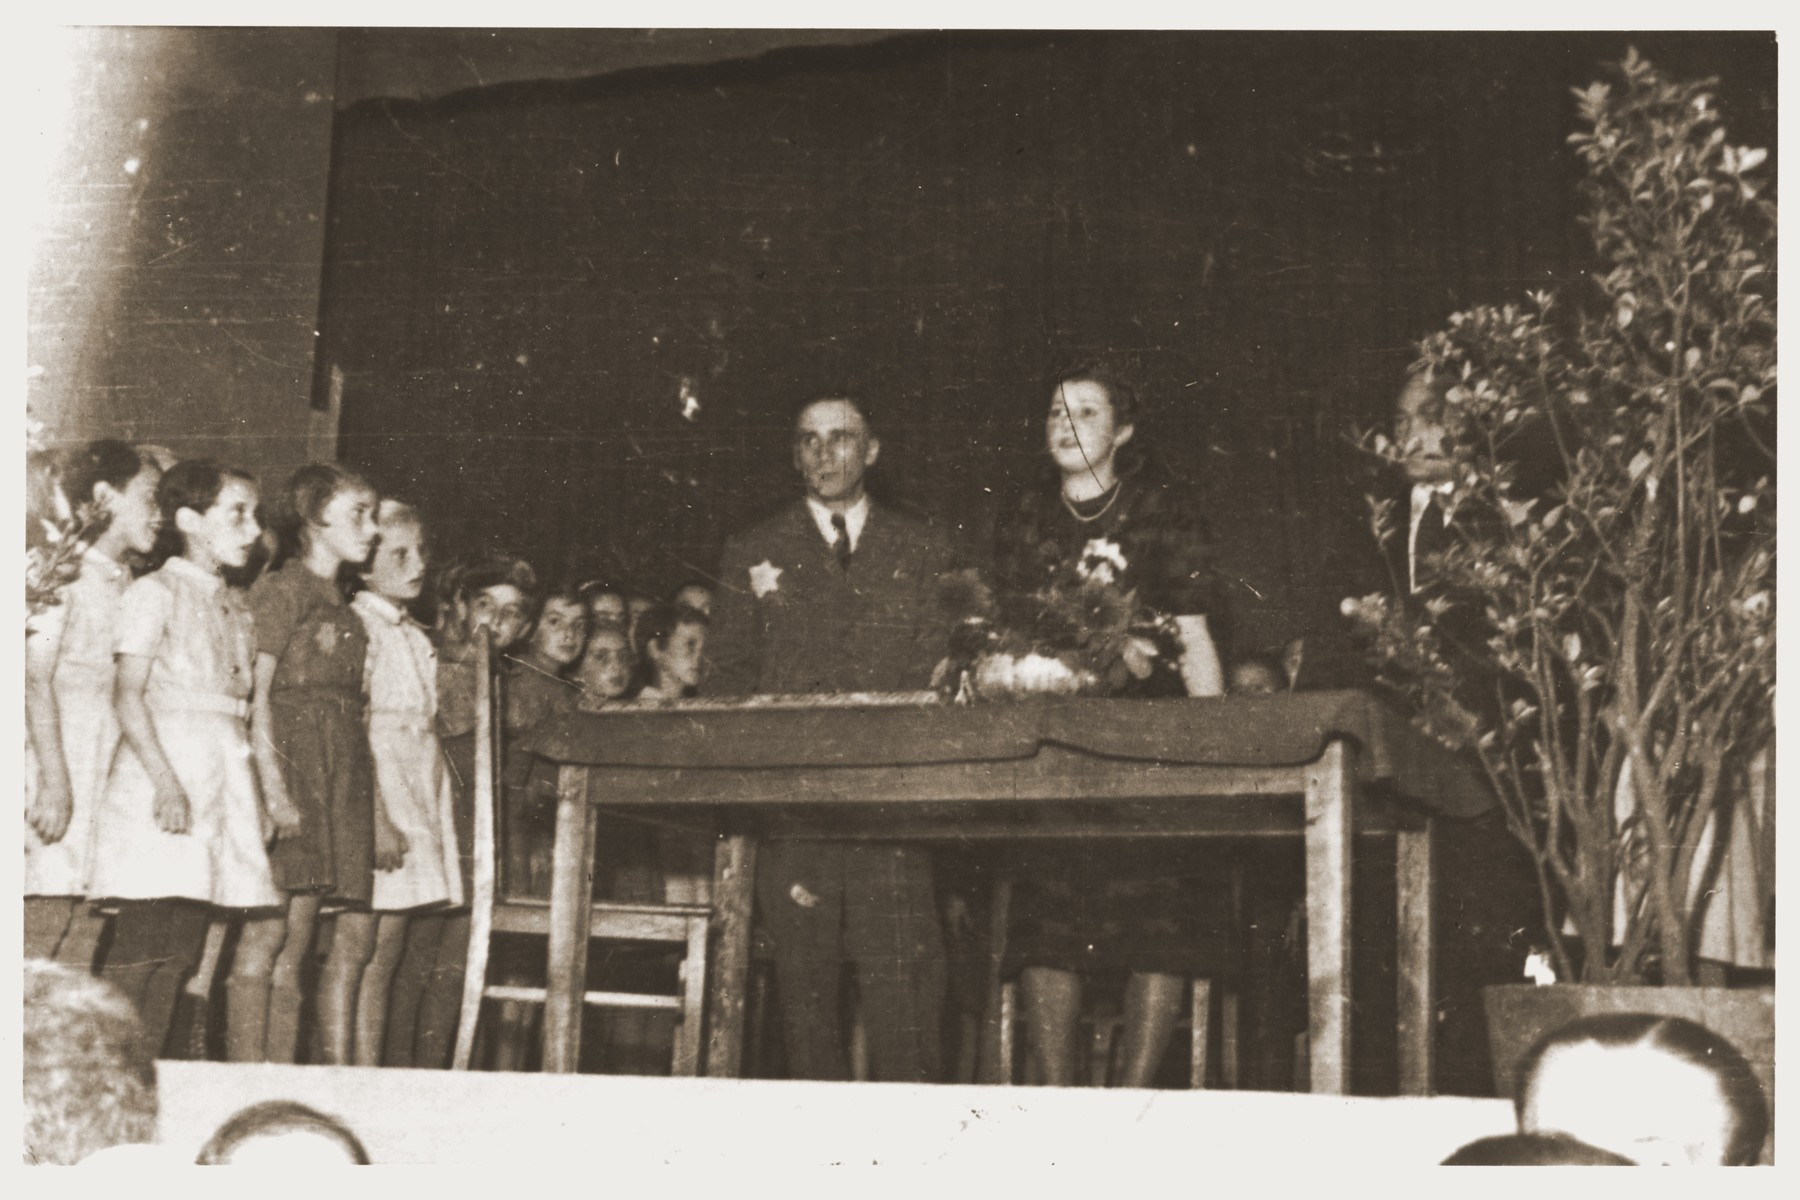 A group of school children are lined up on a stage during a formal presentation in the Lodz ghetto.